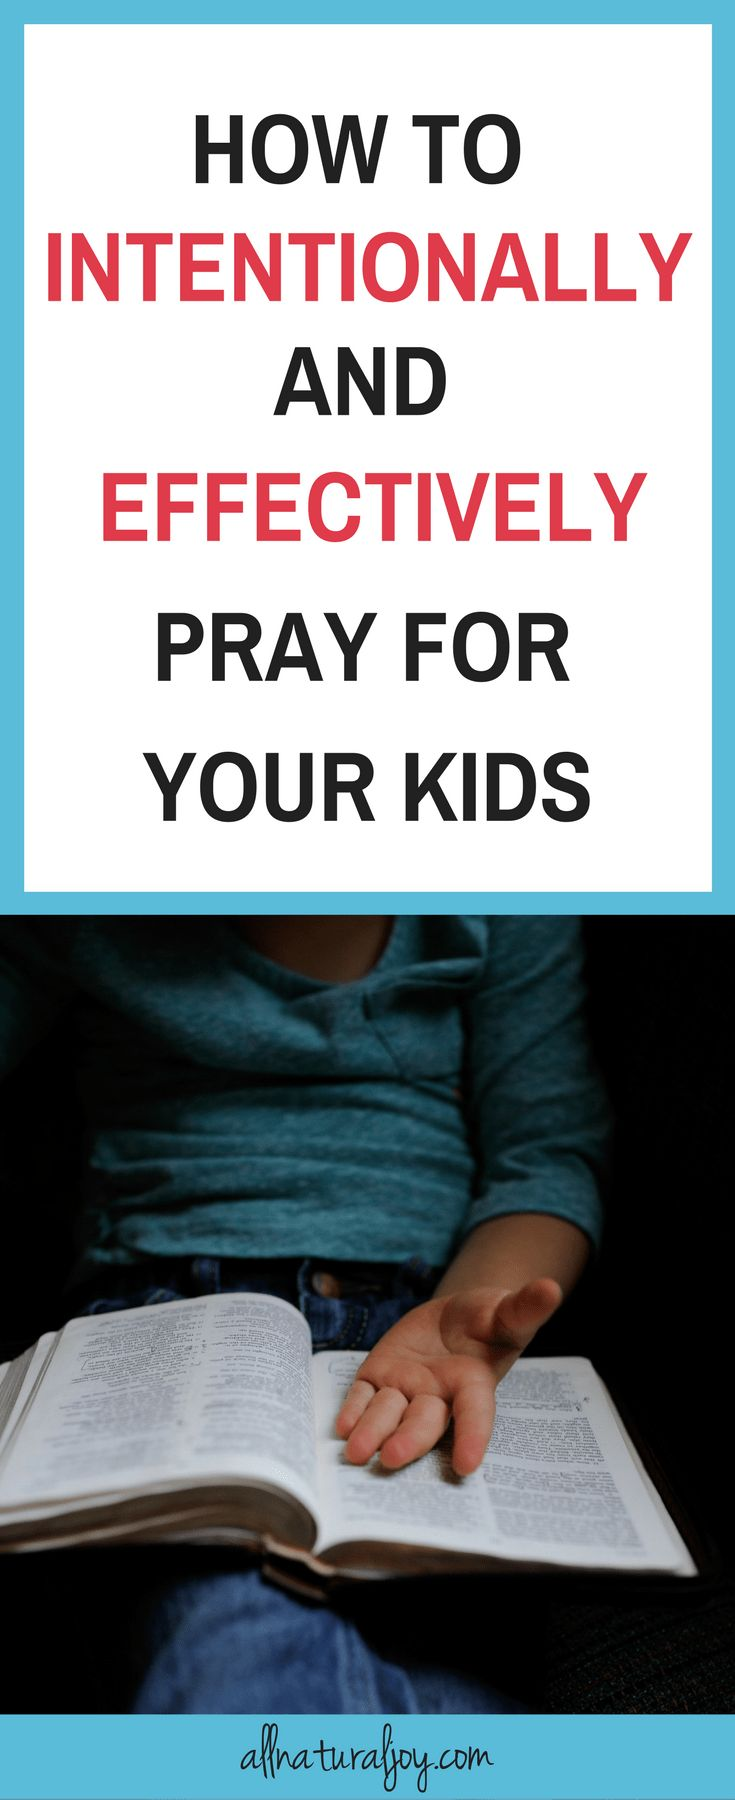 How to intentionally & effectively pray for your kids